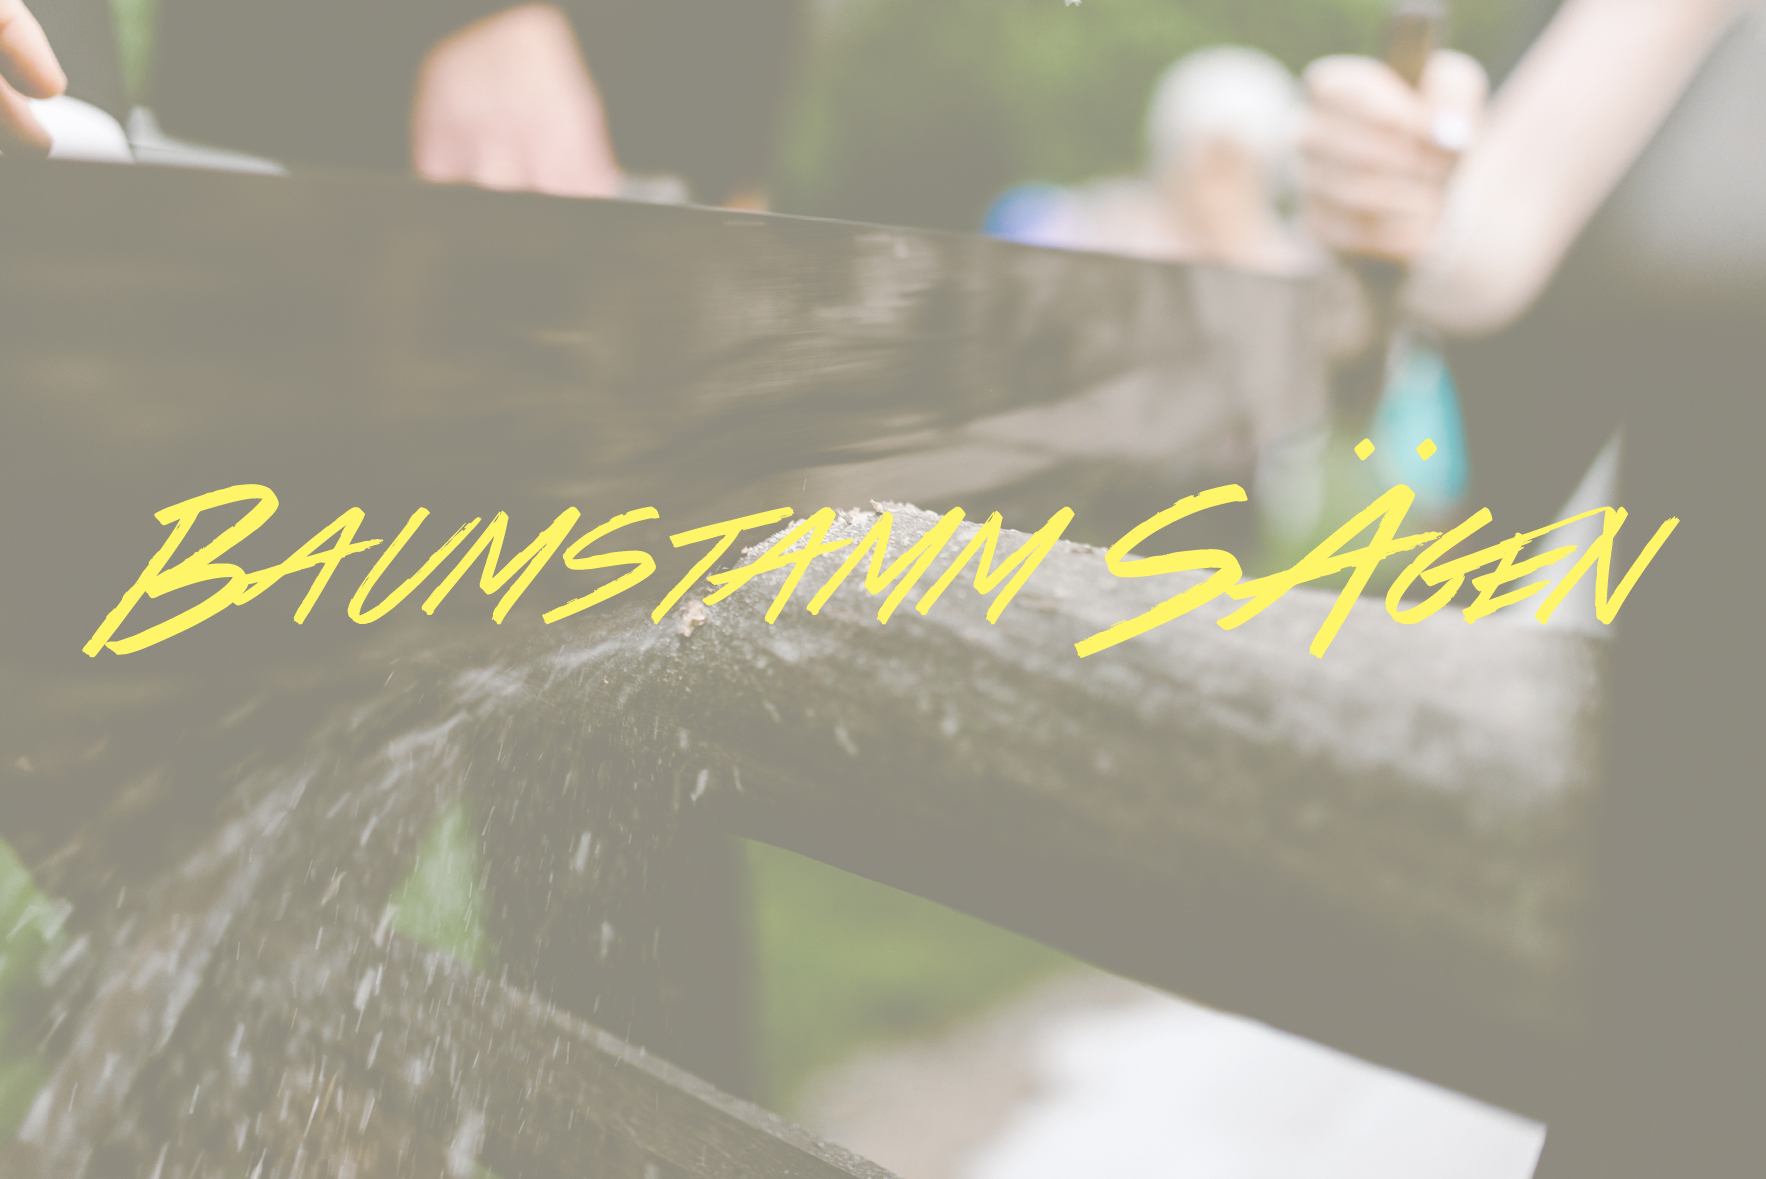 Baumstamm Sägen is another German wedding tradition where the couple saws a log in half to symbolize the first obstacle they must overcome in their marriage.